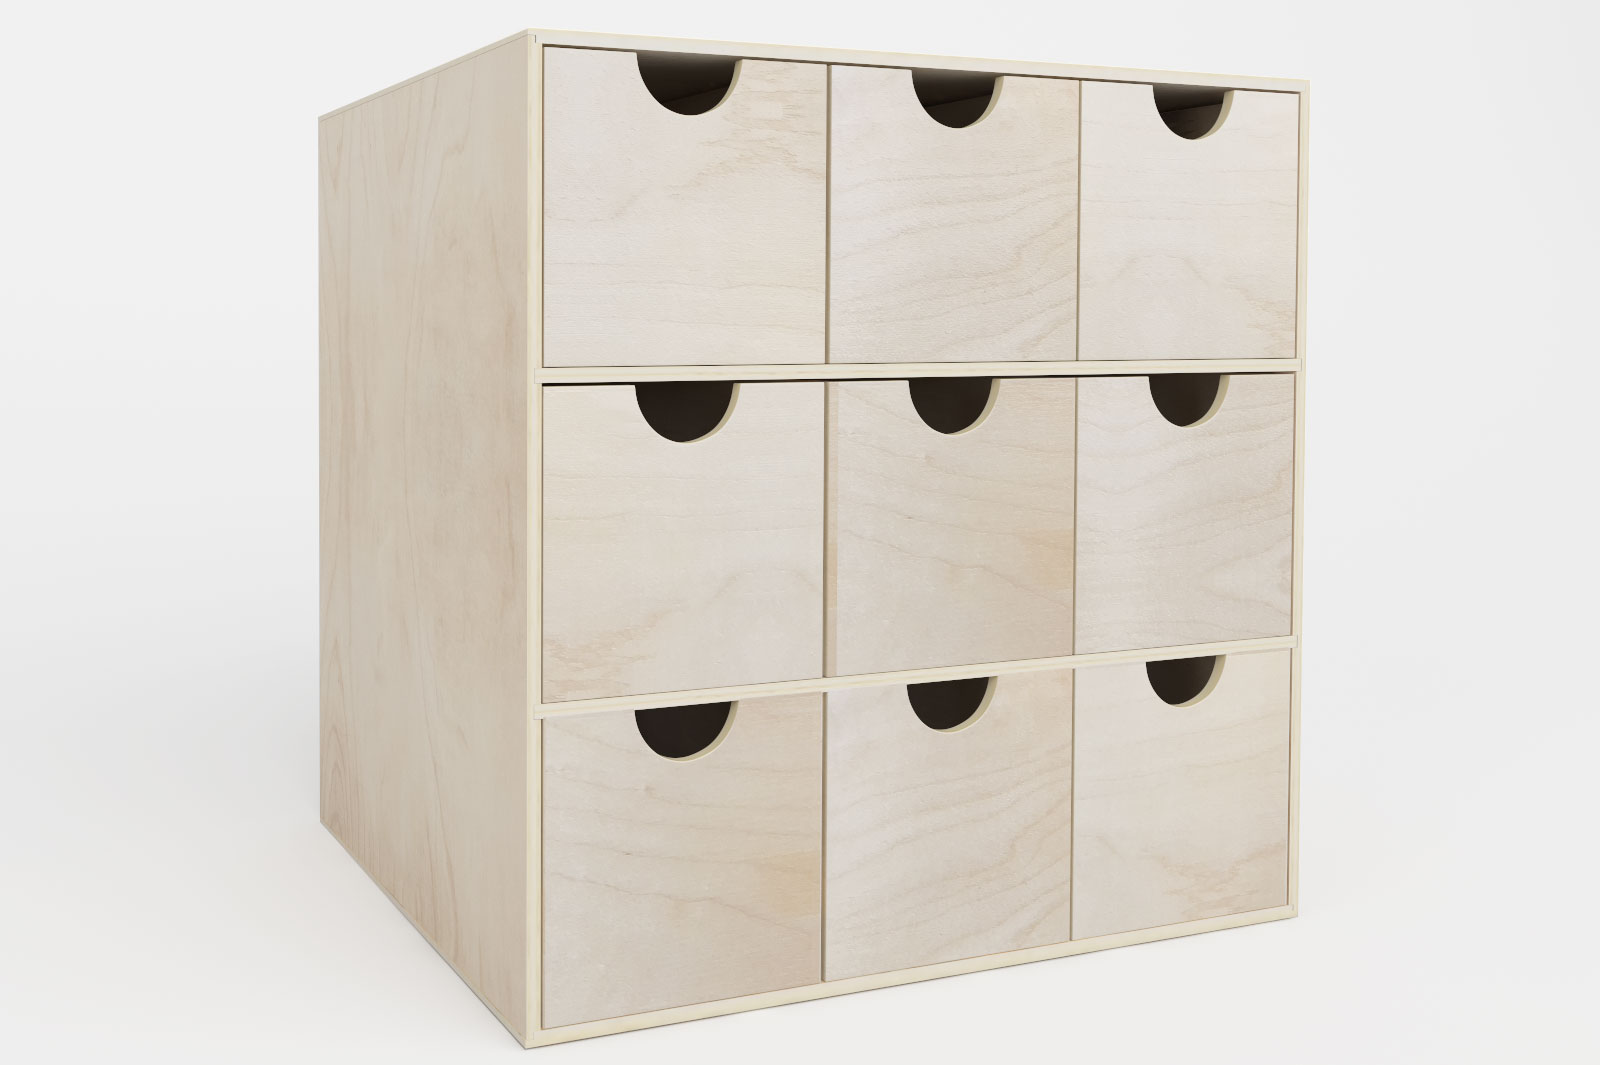 Kallax Schrank Mini-kommode Für Ikea Kallax Regal | New Swedish Design